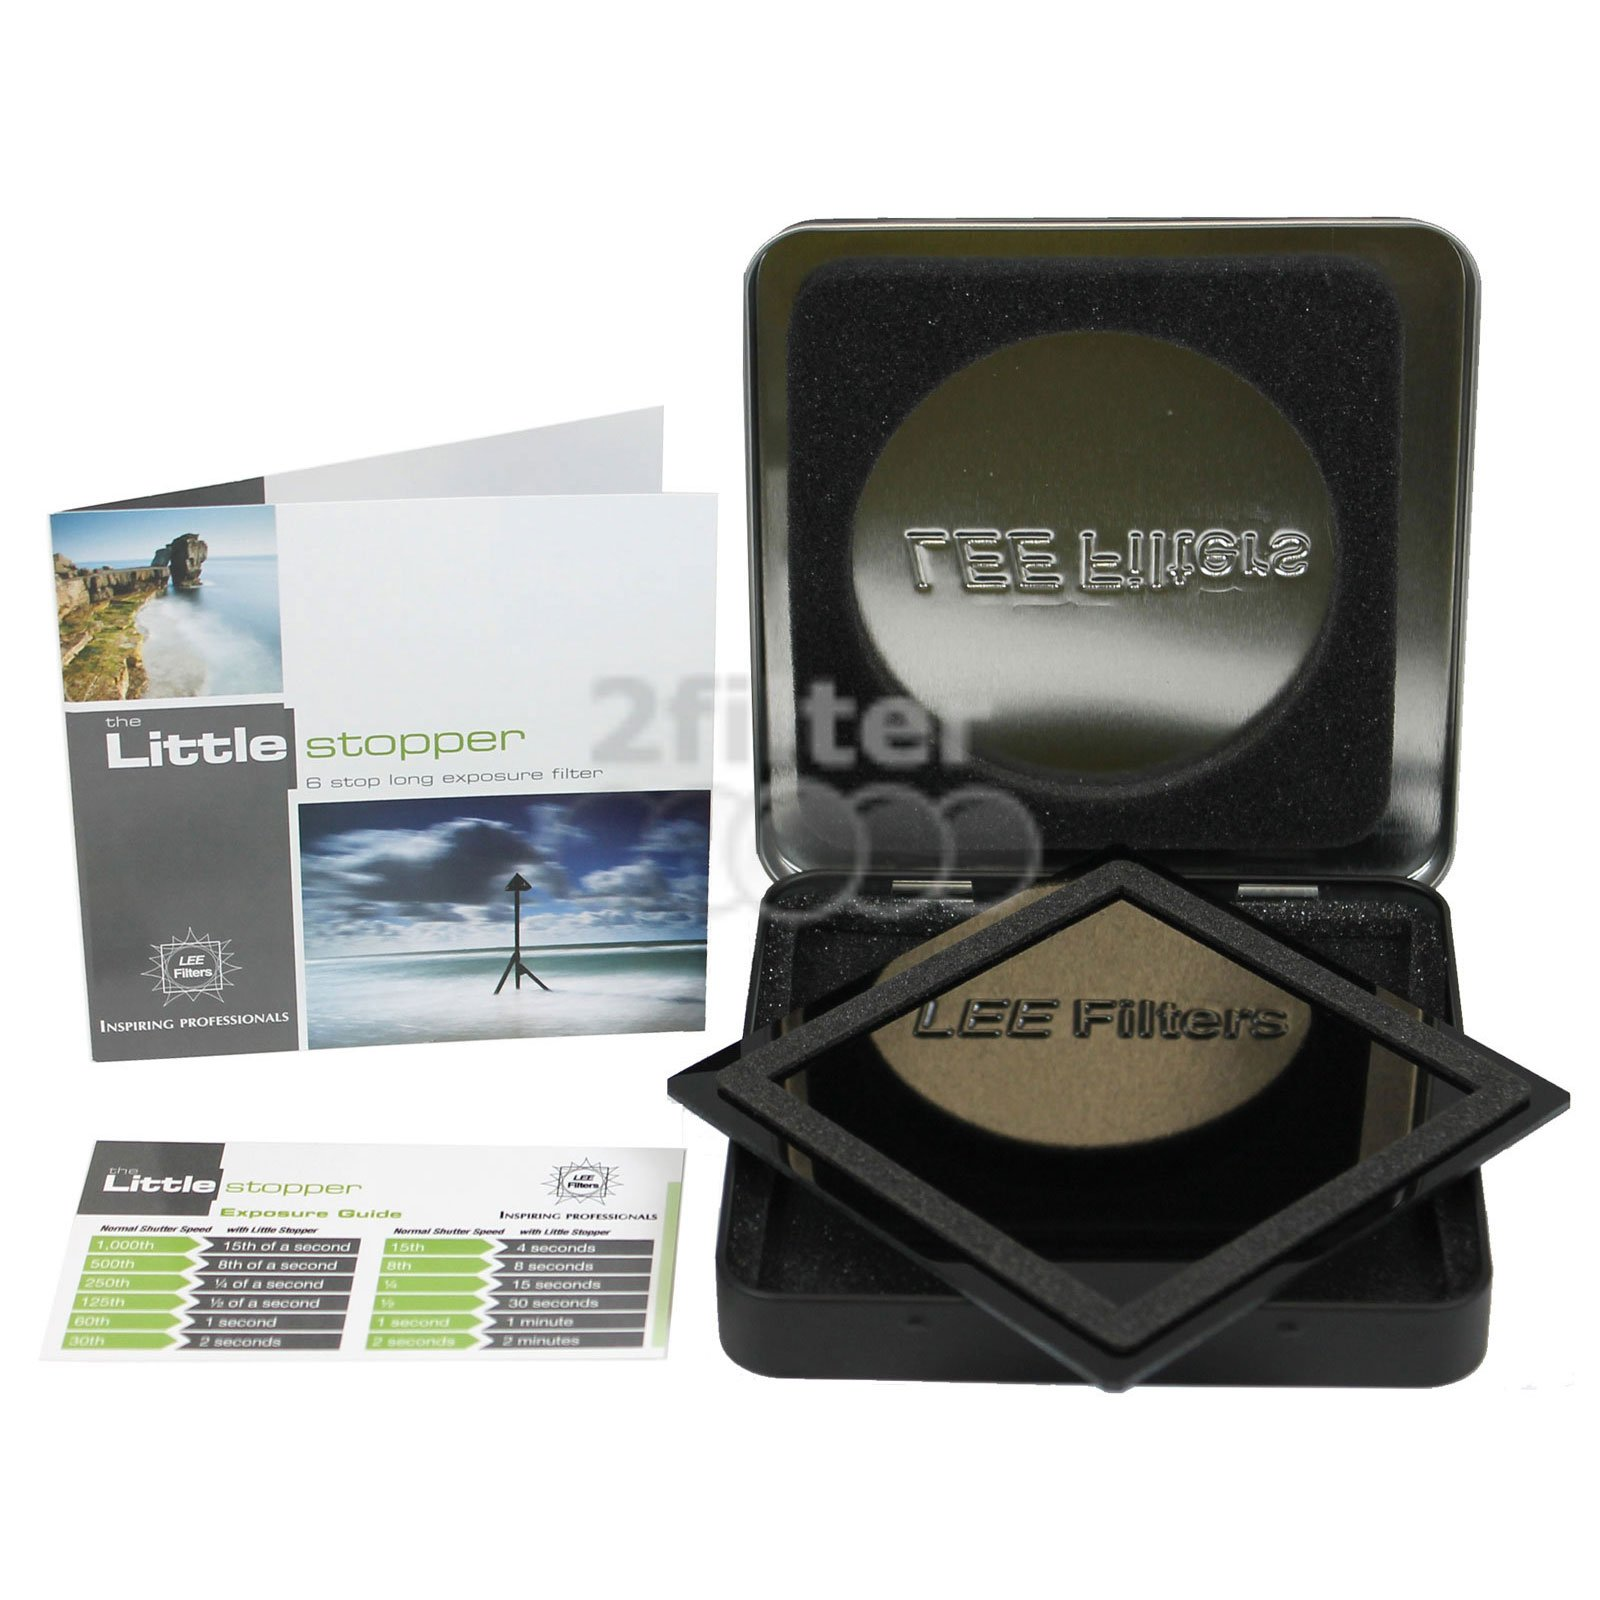 LEE Filters 100mm Big Stopper and 100mm Little Stopper Filters (4x4) with 2filter Cleaning Kit